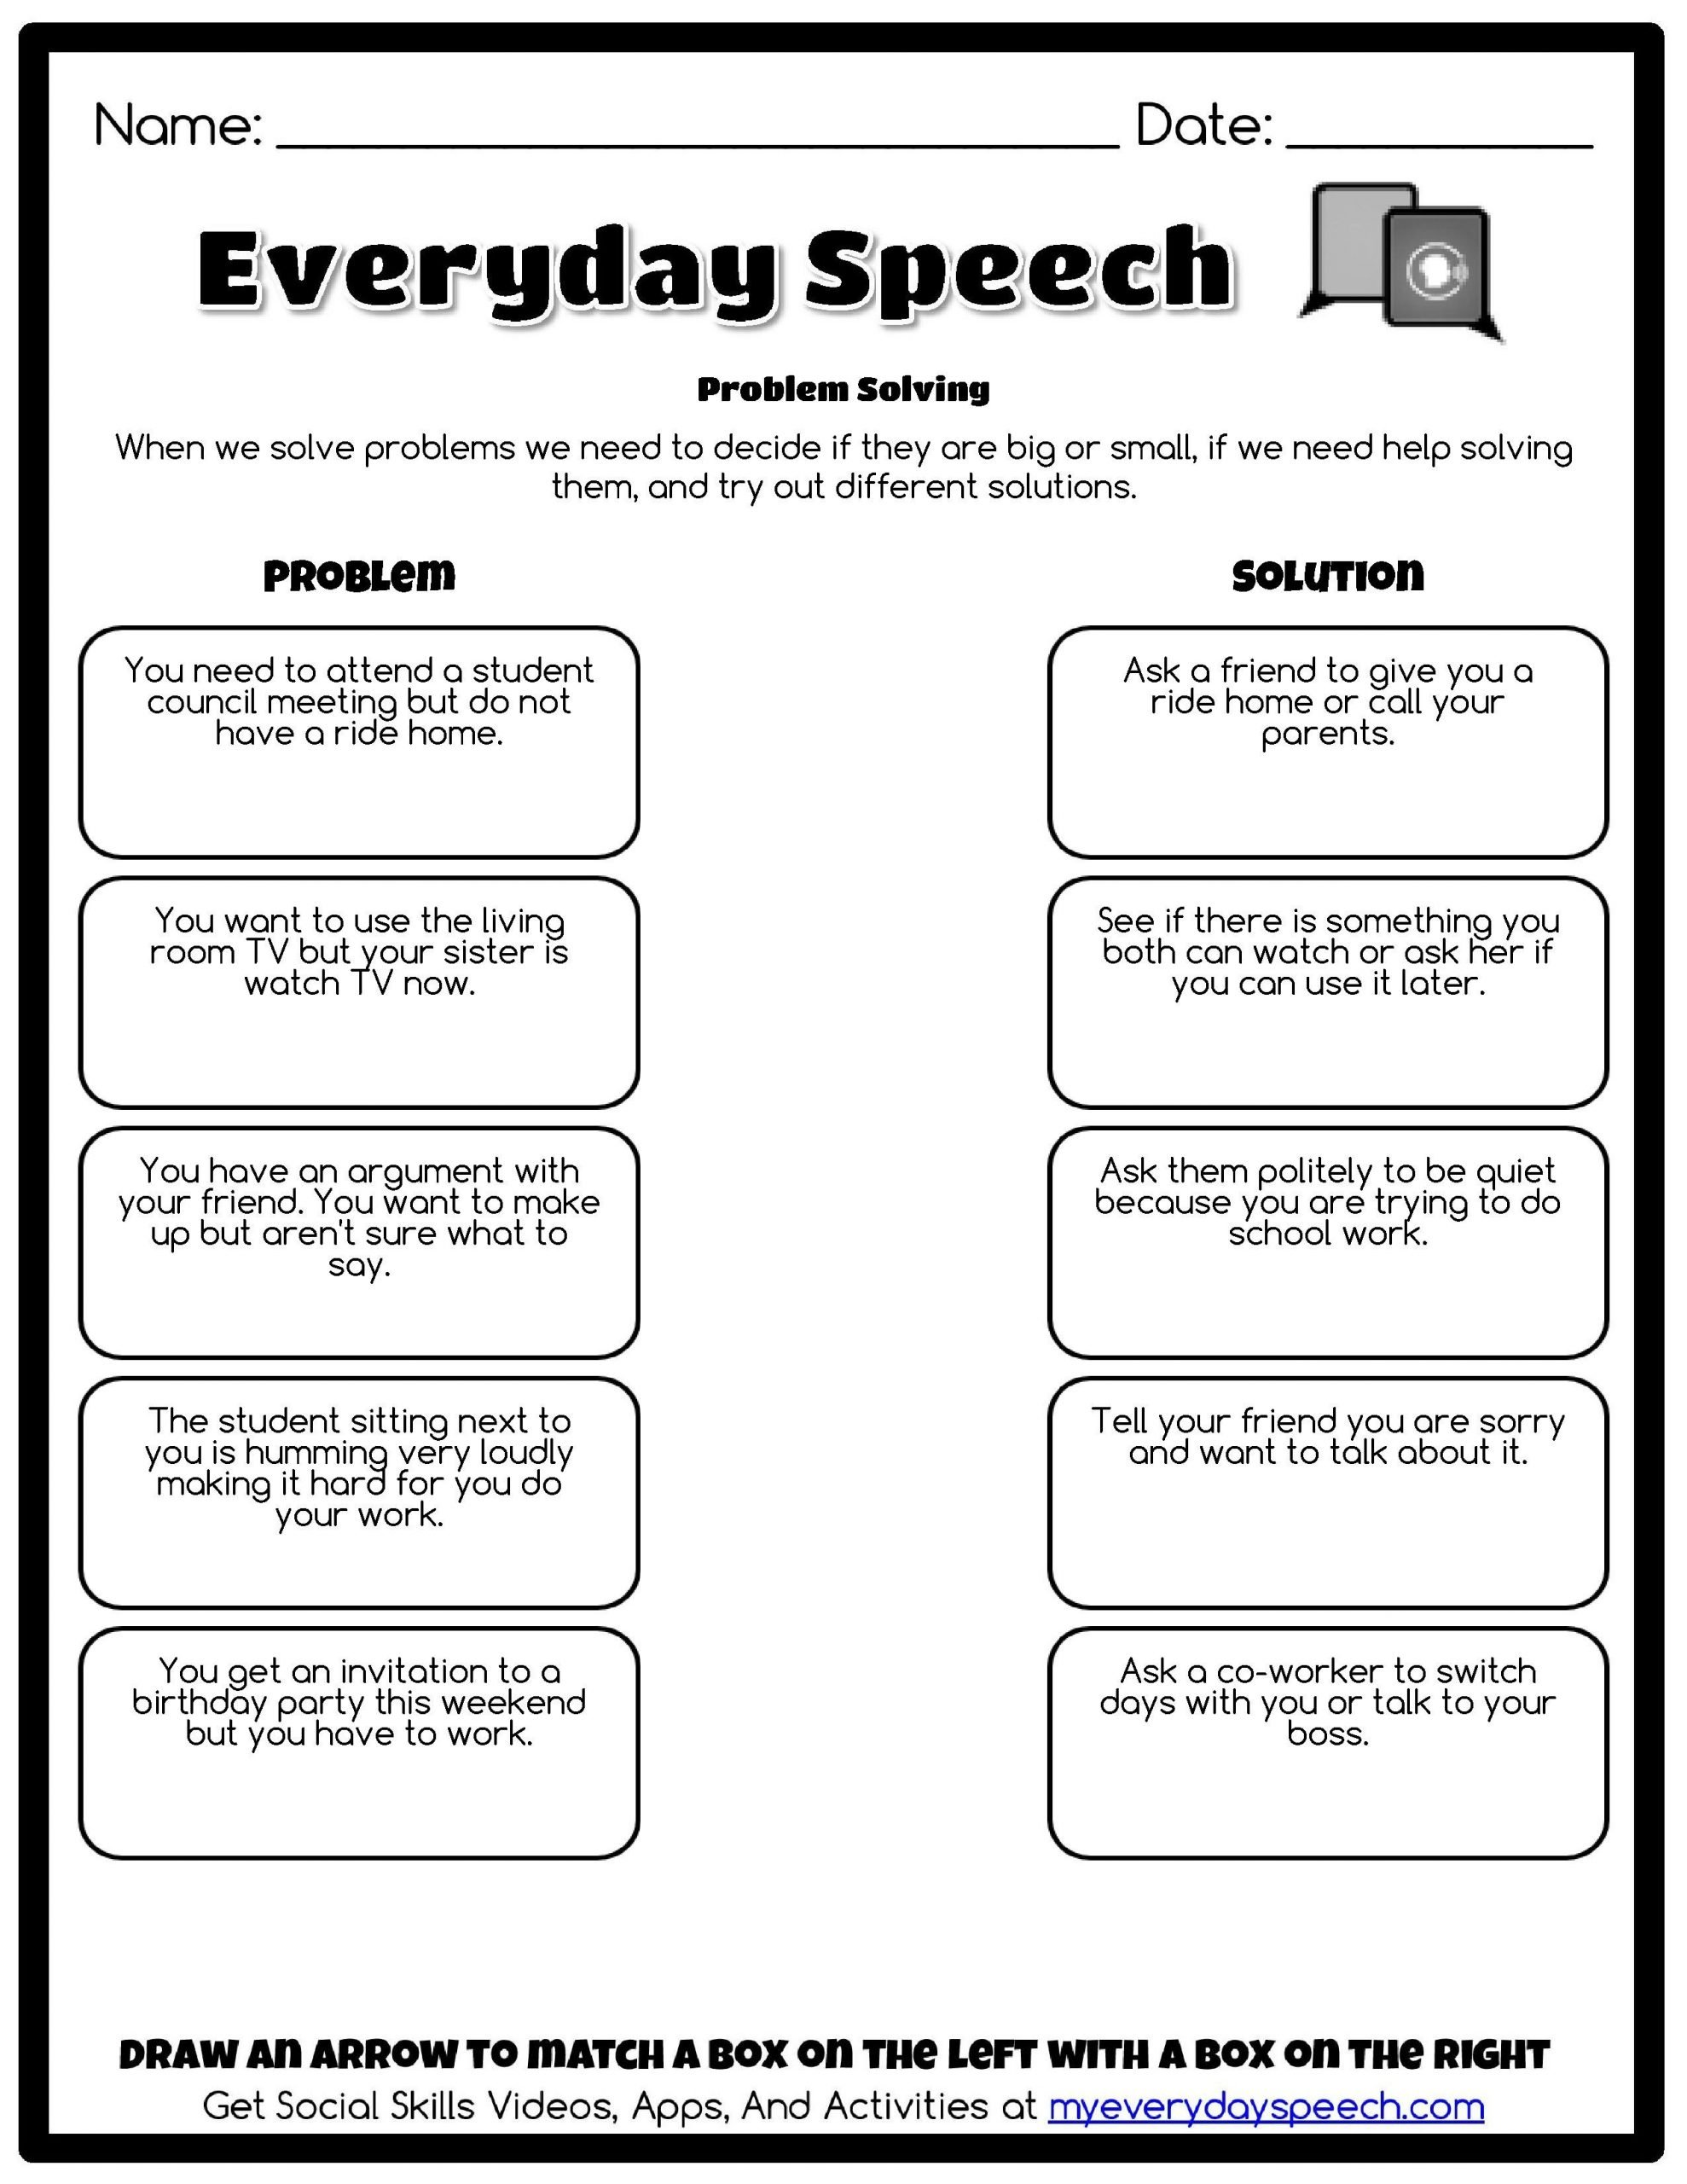 Social Skills Training Worksheets Problem solving Everyday Speech